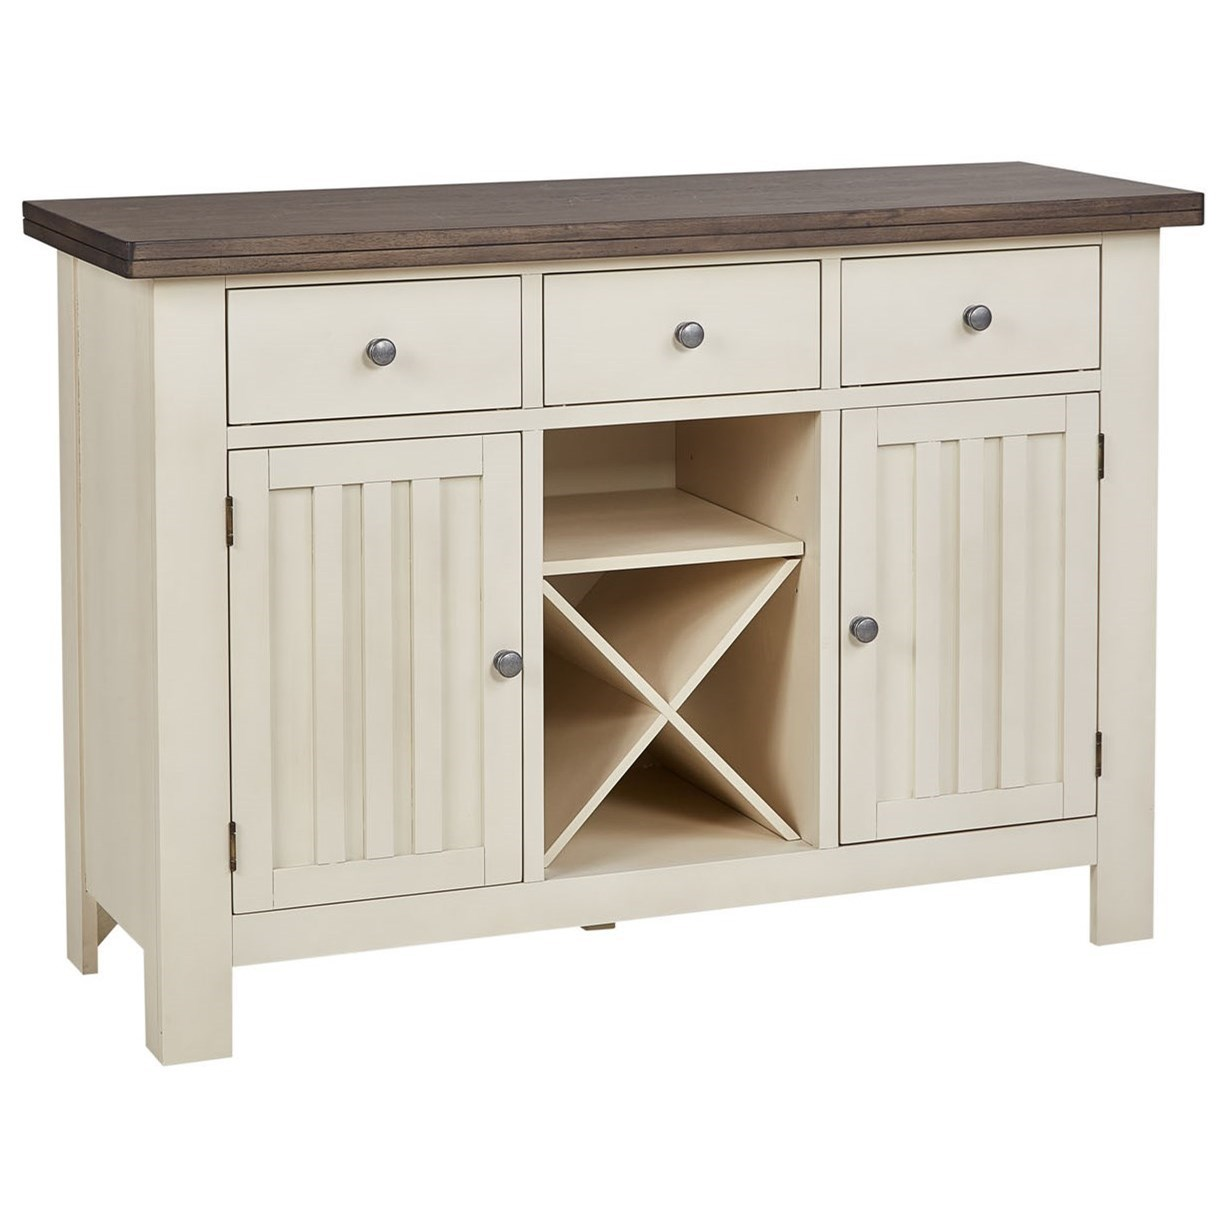 Solid Wood Transitional 3-Drawer Server with Built-In Wine Storage